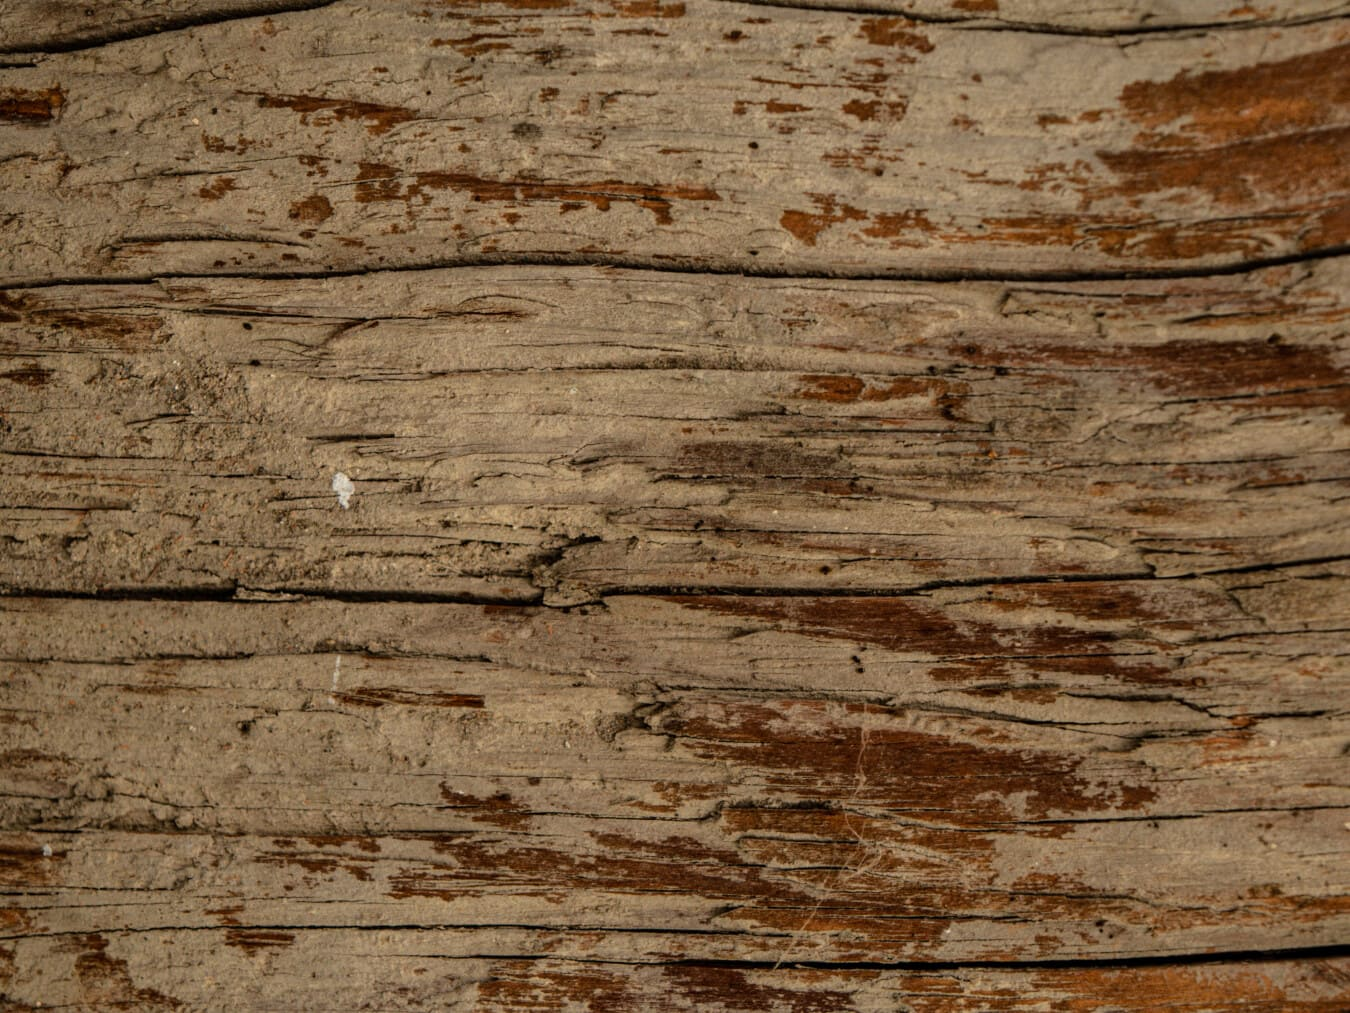 hardwood, texture, surface, wood, rough, pattern, old, carpentry, construction, dirty